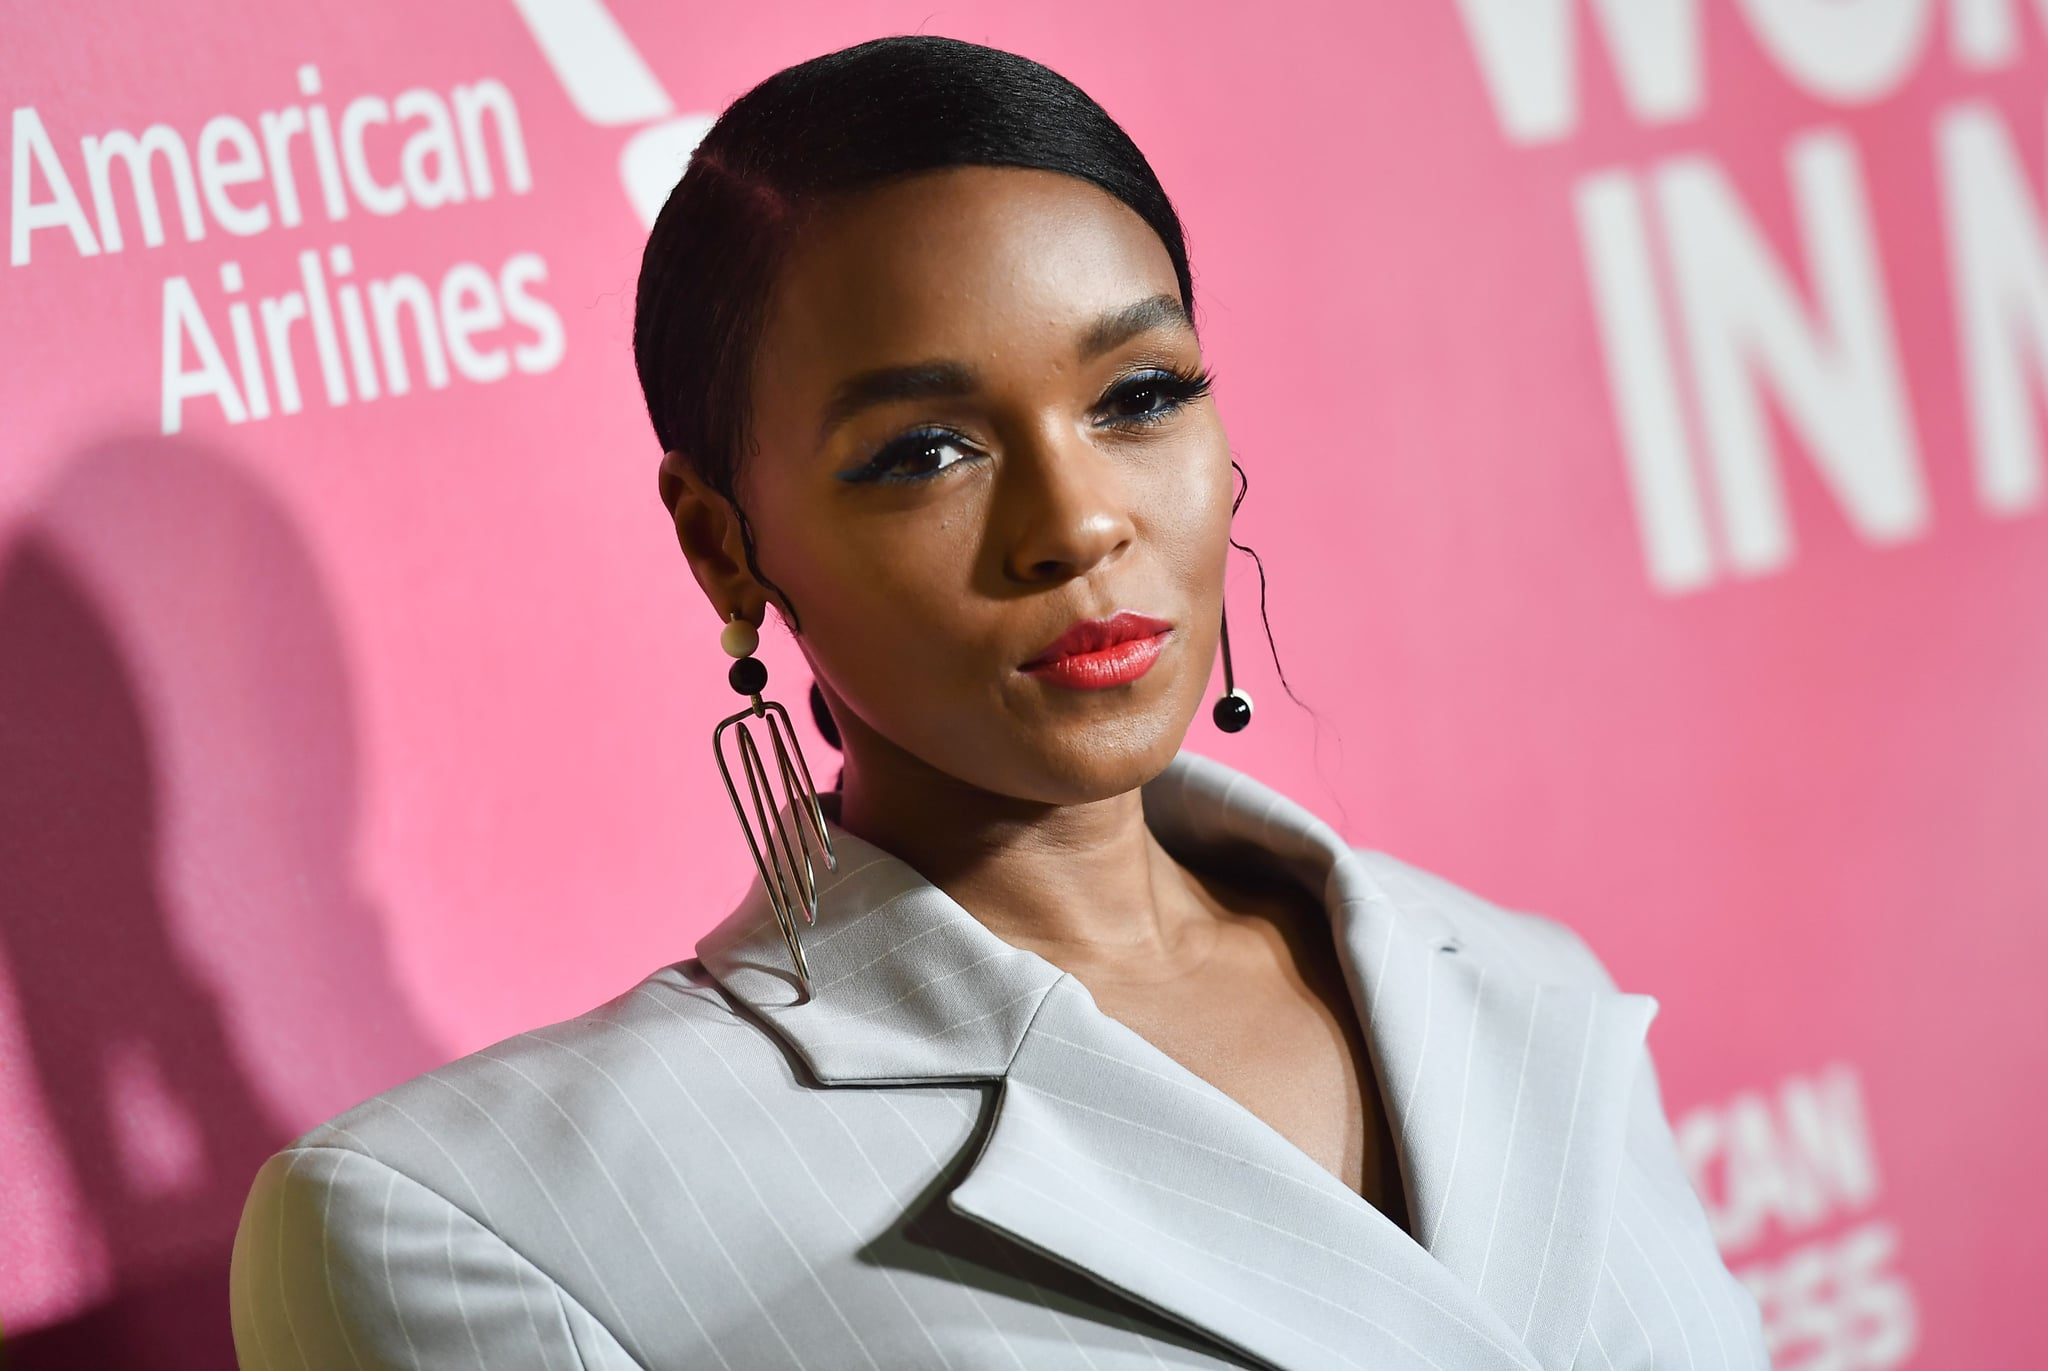 US singer/actress Janelle Monae attends Billboard's 13th Annual Women In Music event at Pier 36 in New York City on on December 6, 2018. (Photo by Angela Weiss / AFP)        (Photo credit should read ANGELA WEISS/AFP/Getty Images)